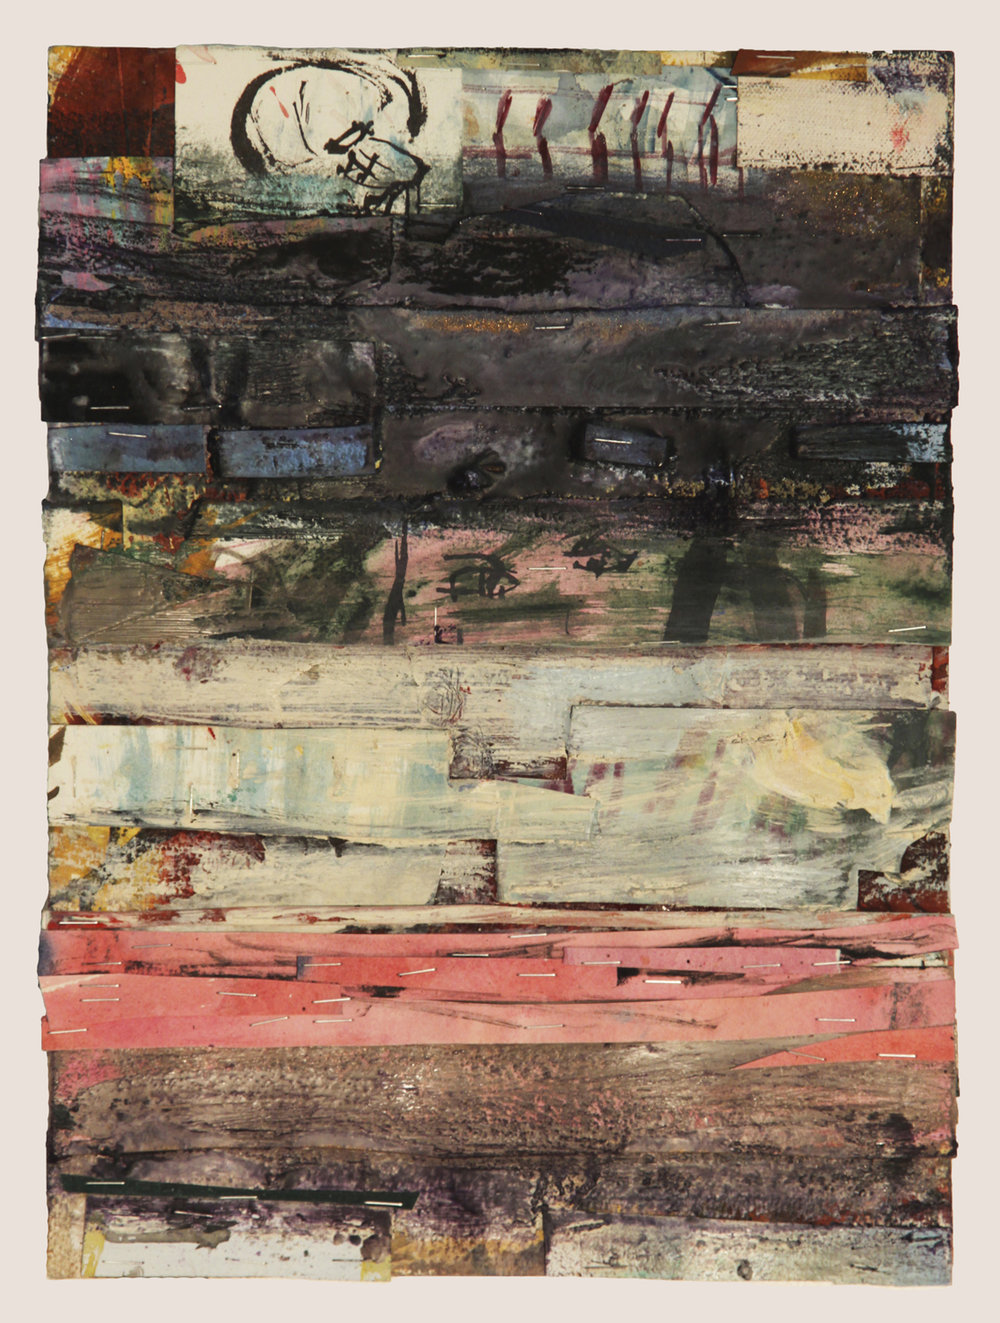 EVERY NEAR MISS, 2016  Encaustics and mixed media on paper  15 x 11 1/4 inches